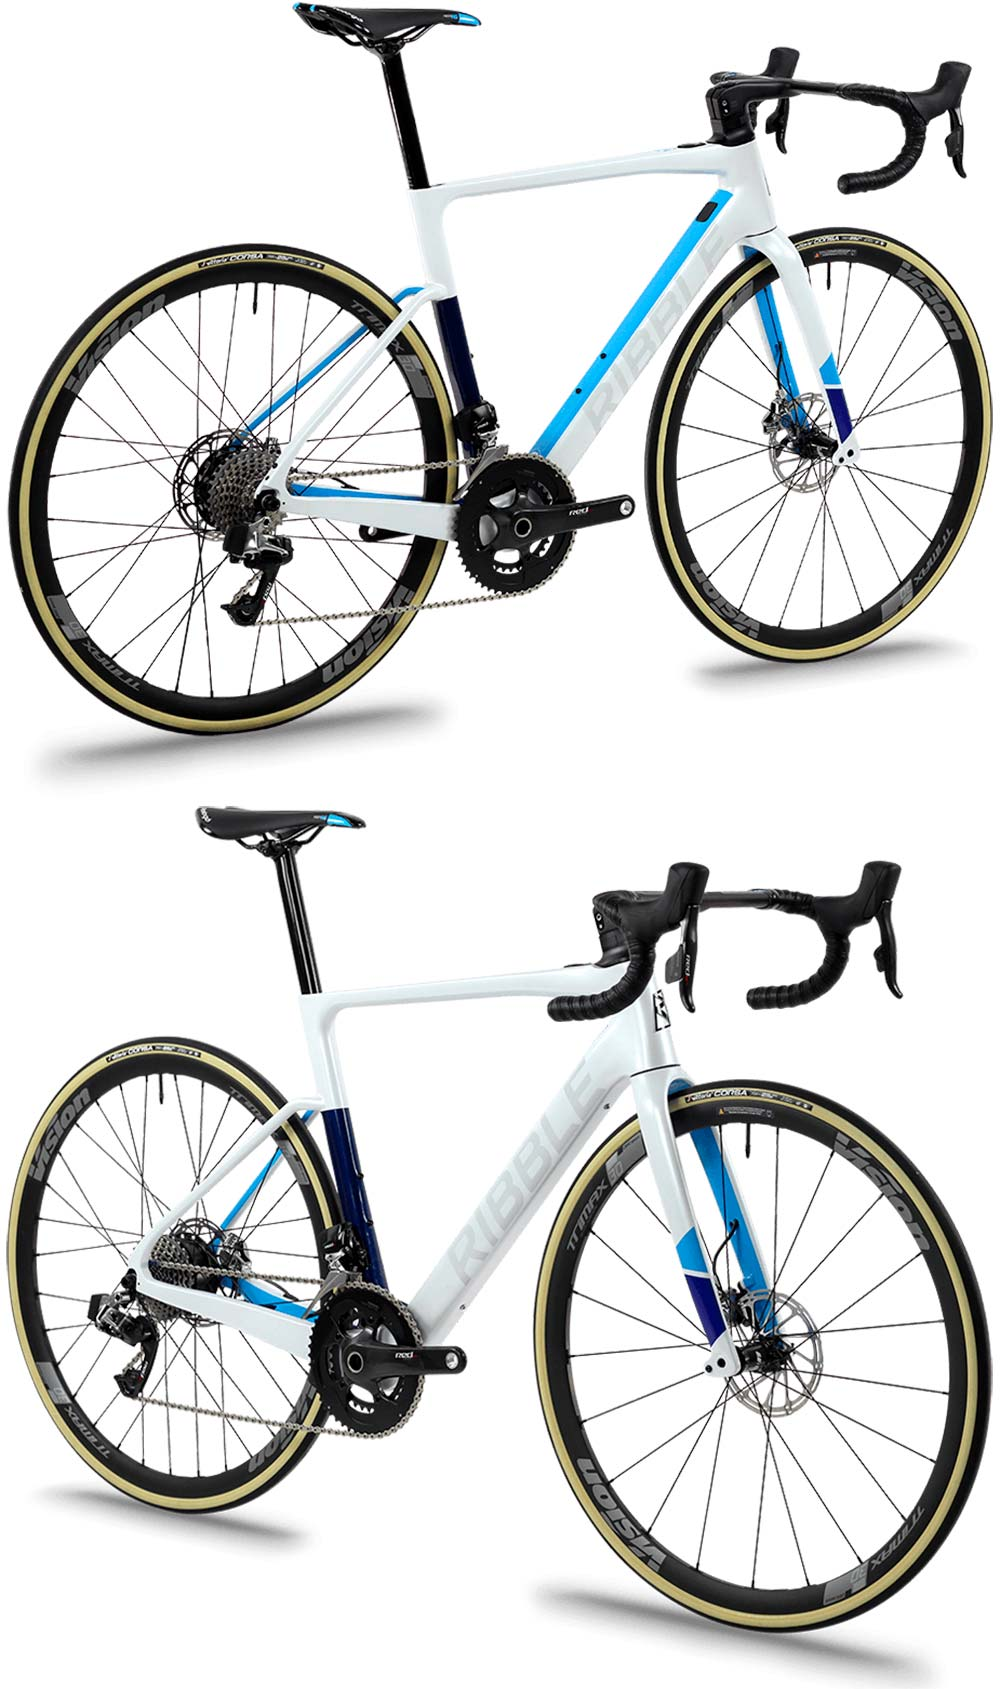 At TodoMountainBike: Ribble Endurance SLe, the lightest electric road bike available to date